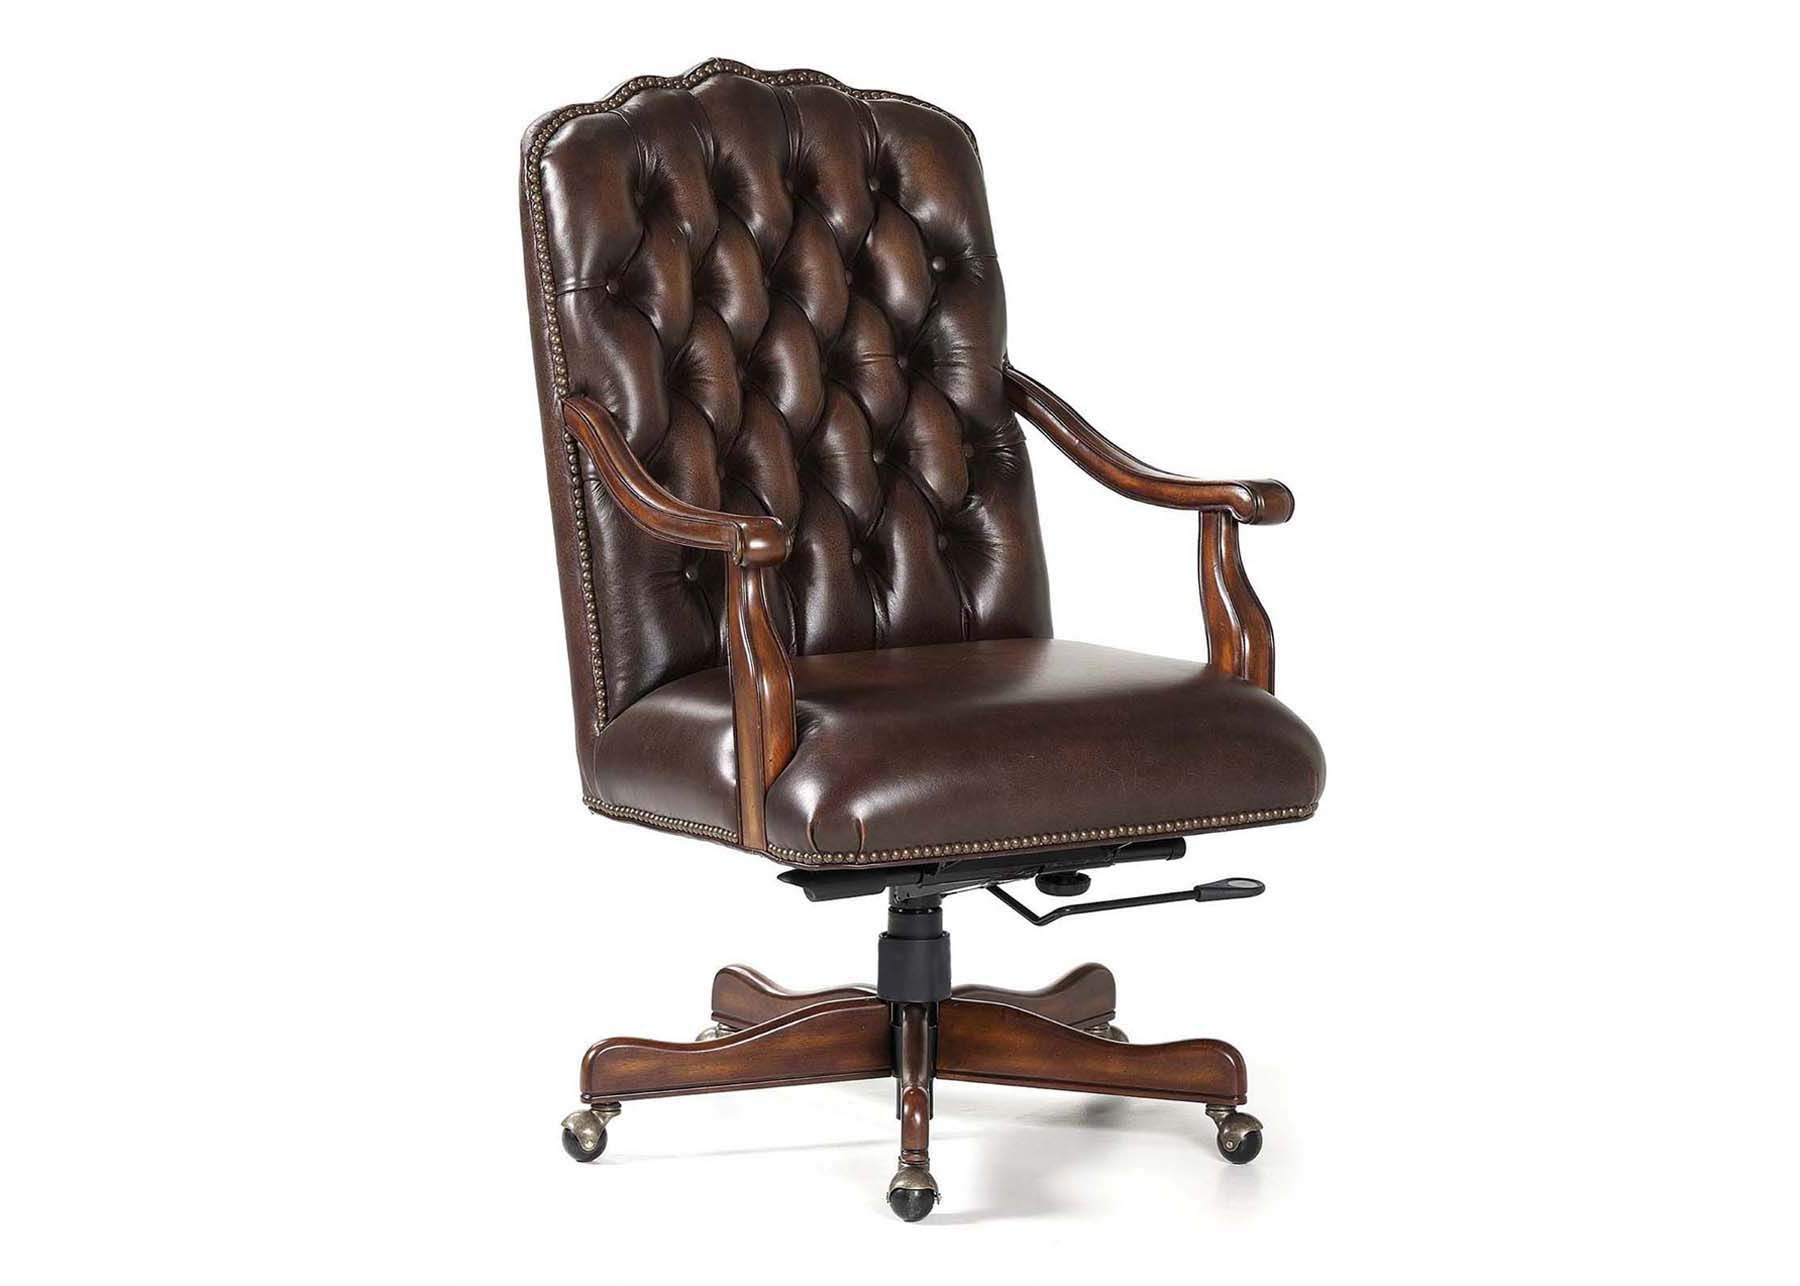 Randall Allen, Great Chair For A Space That Needs Something Not So Heavy!